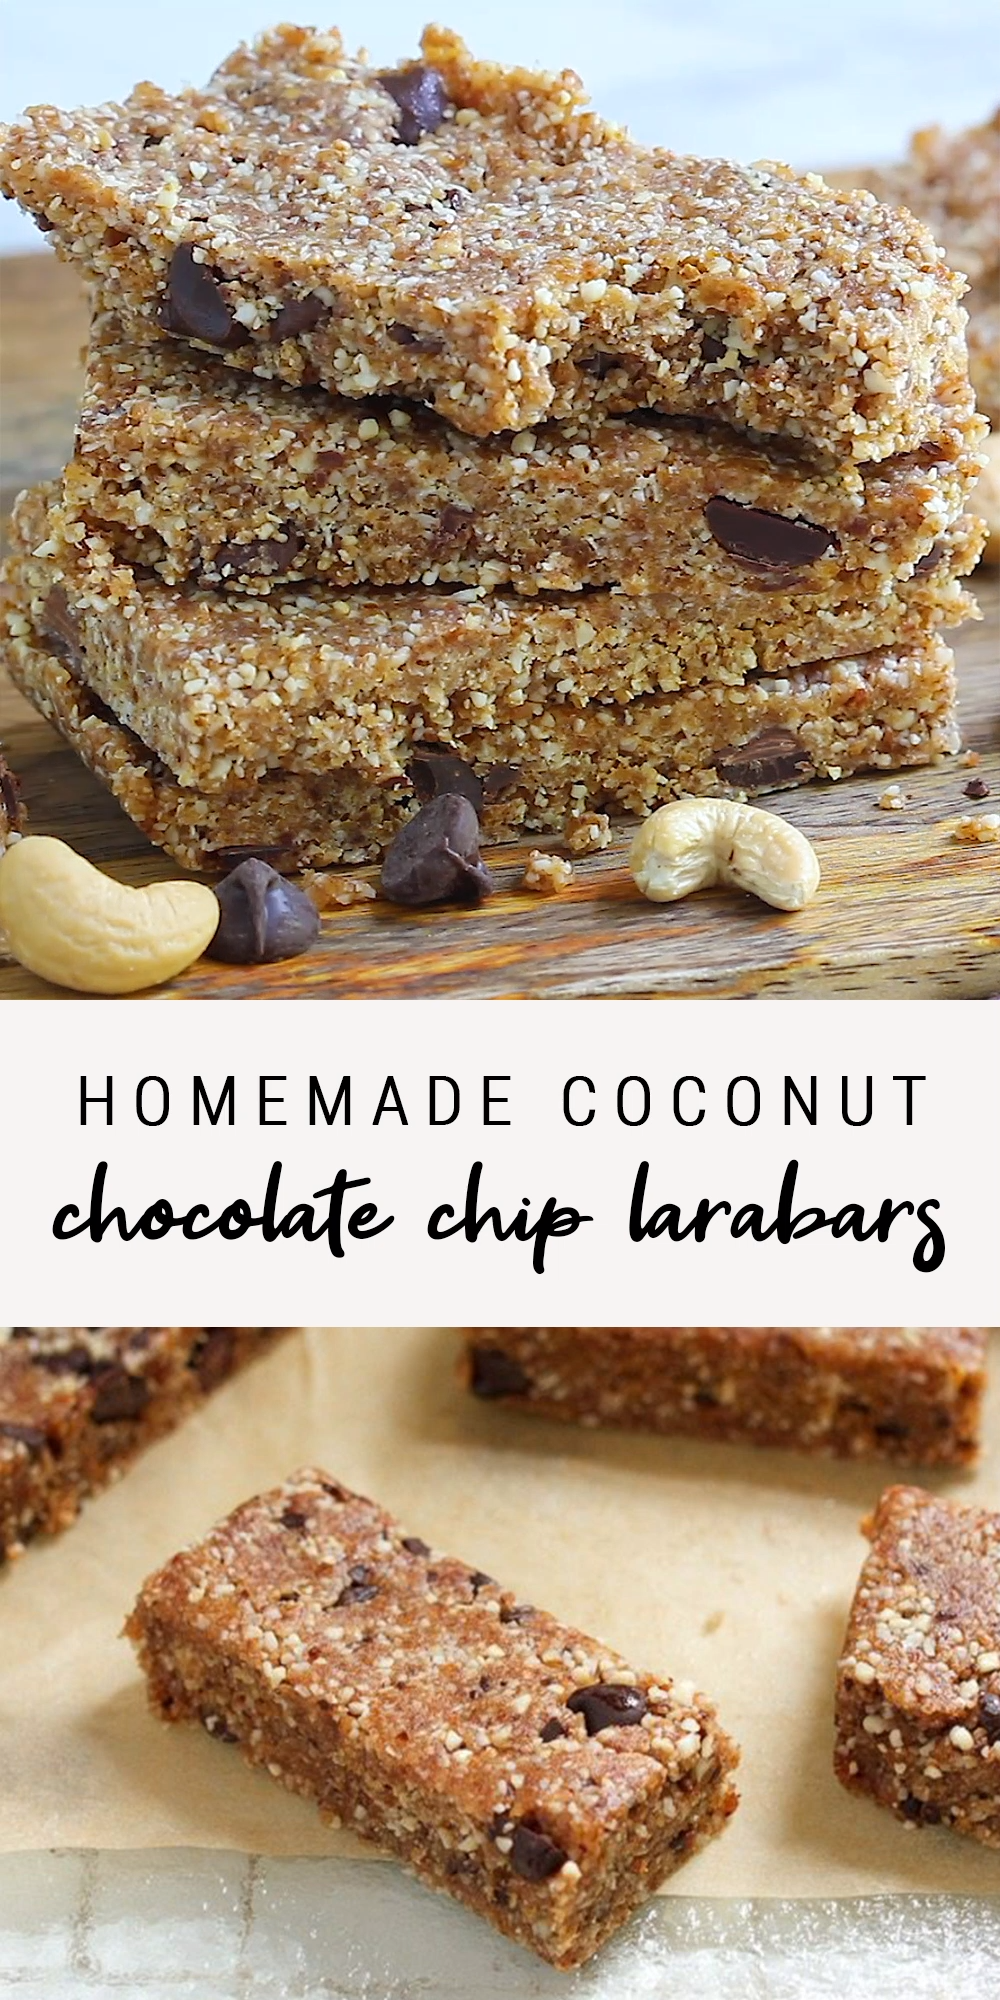 Homemade Coconut Chocolate Chip Larabars | Easy + Healthy 5-Ingredient Recipe